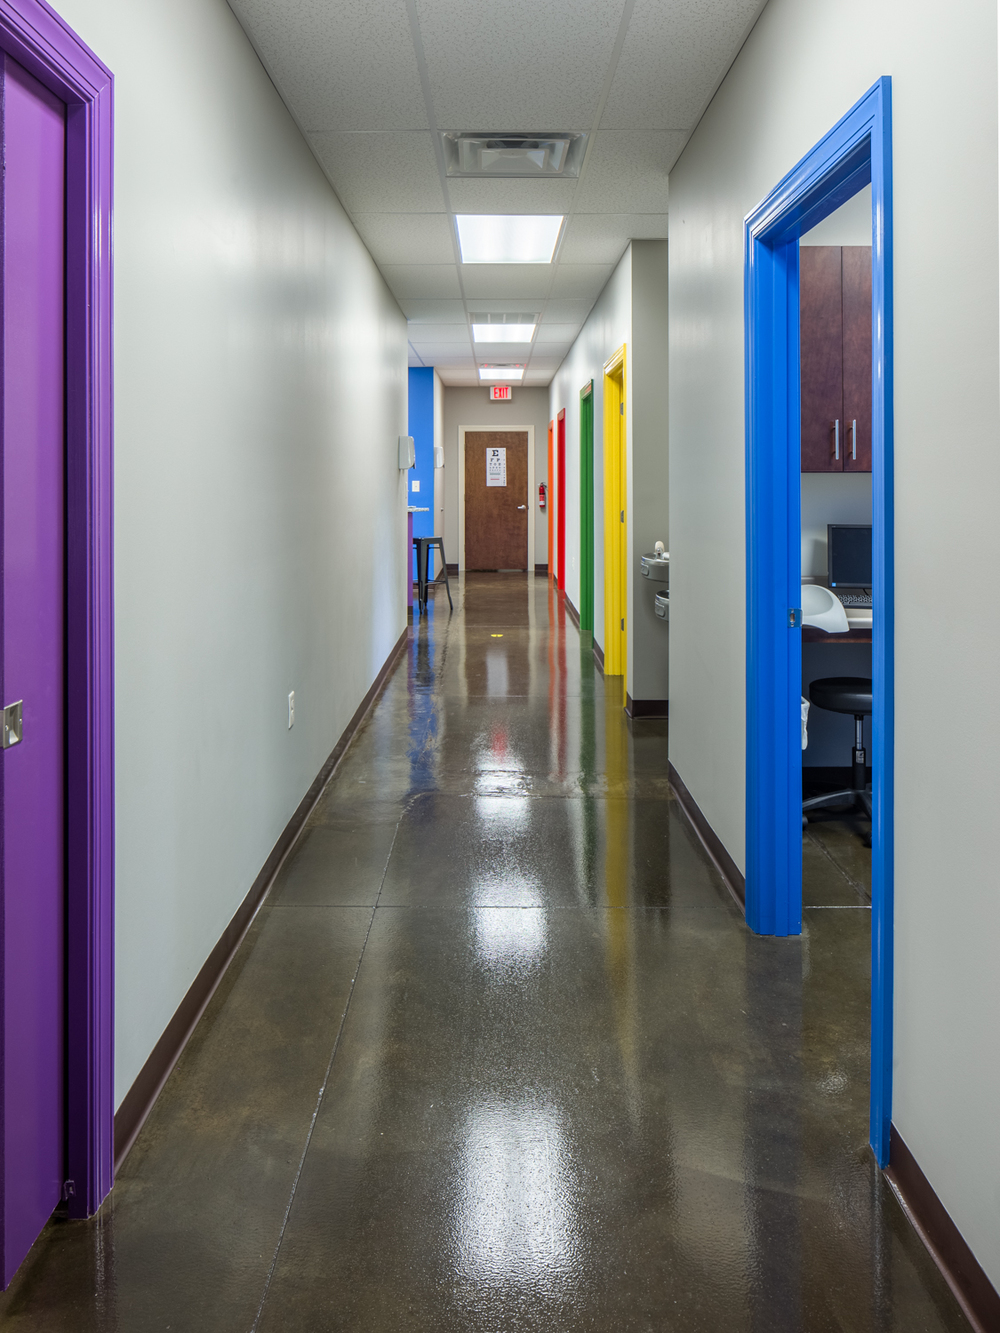 Pathway Pediatrics - Birmingham AL Commercial Photography0590.jpg